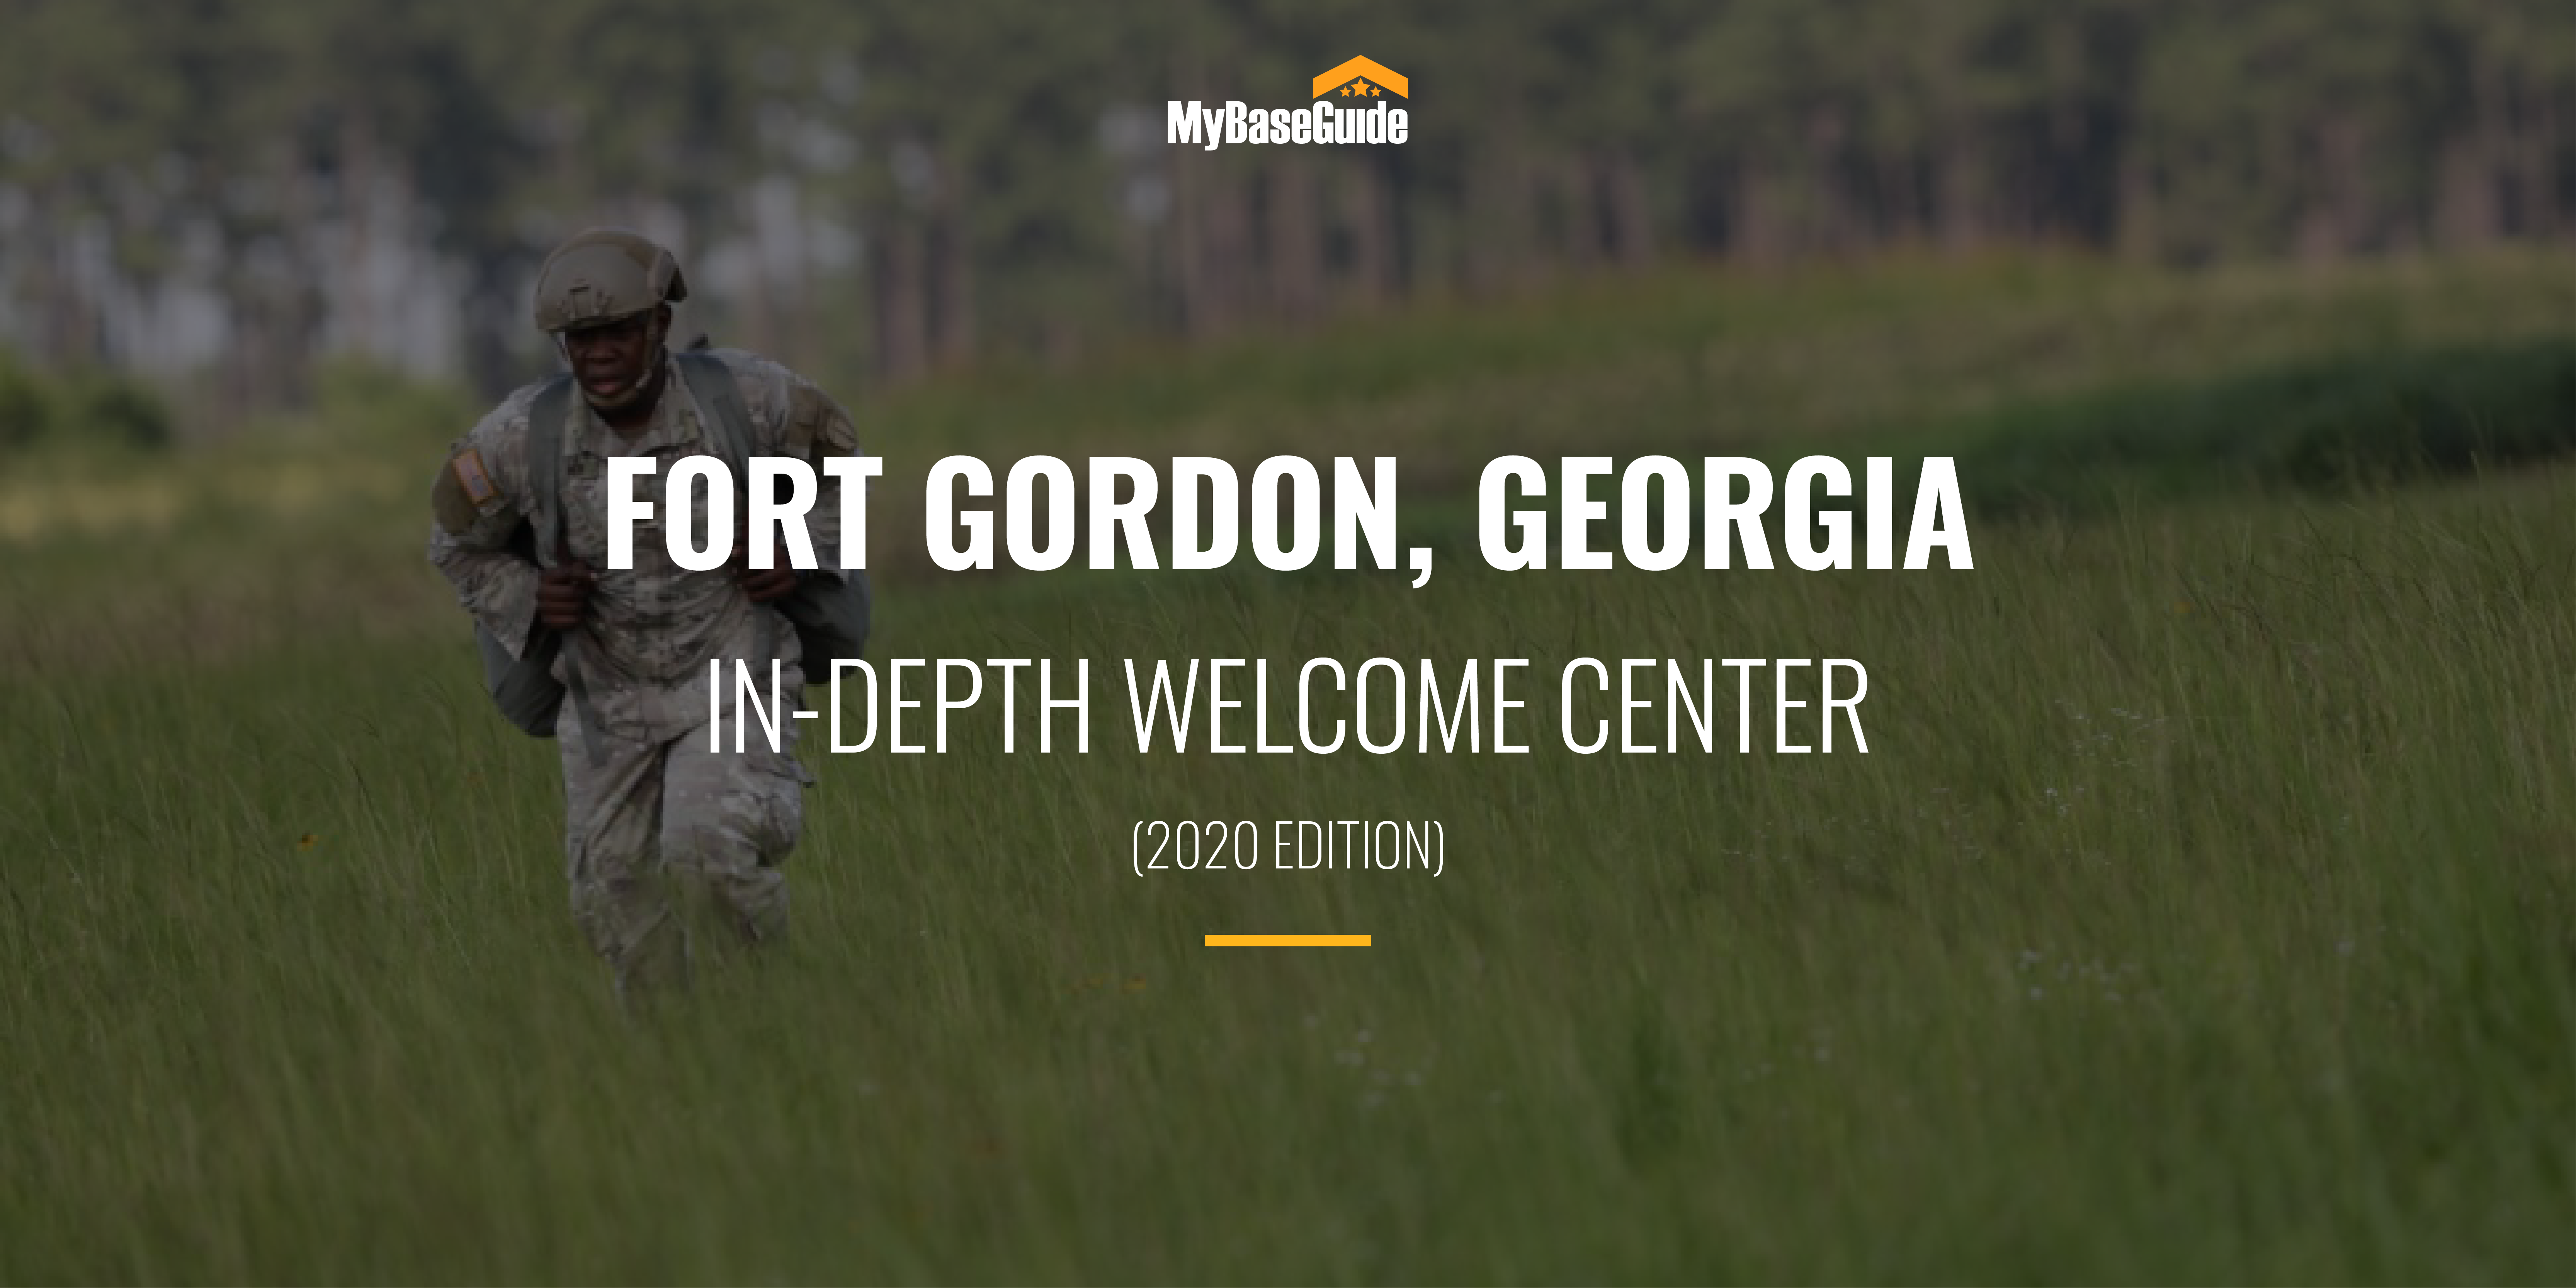 Fort Gordon Georgia